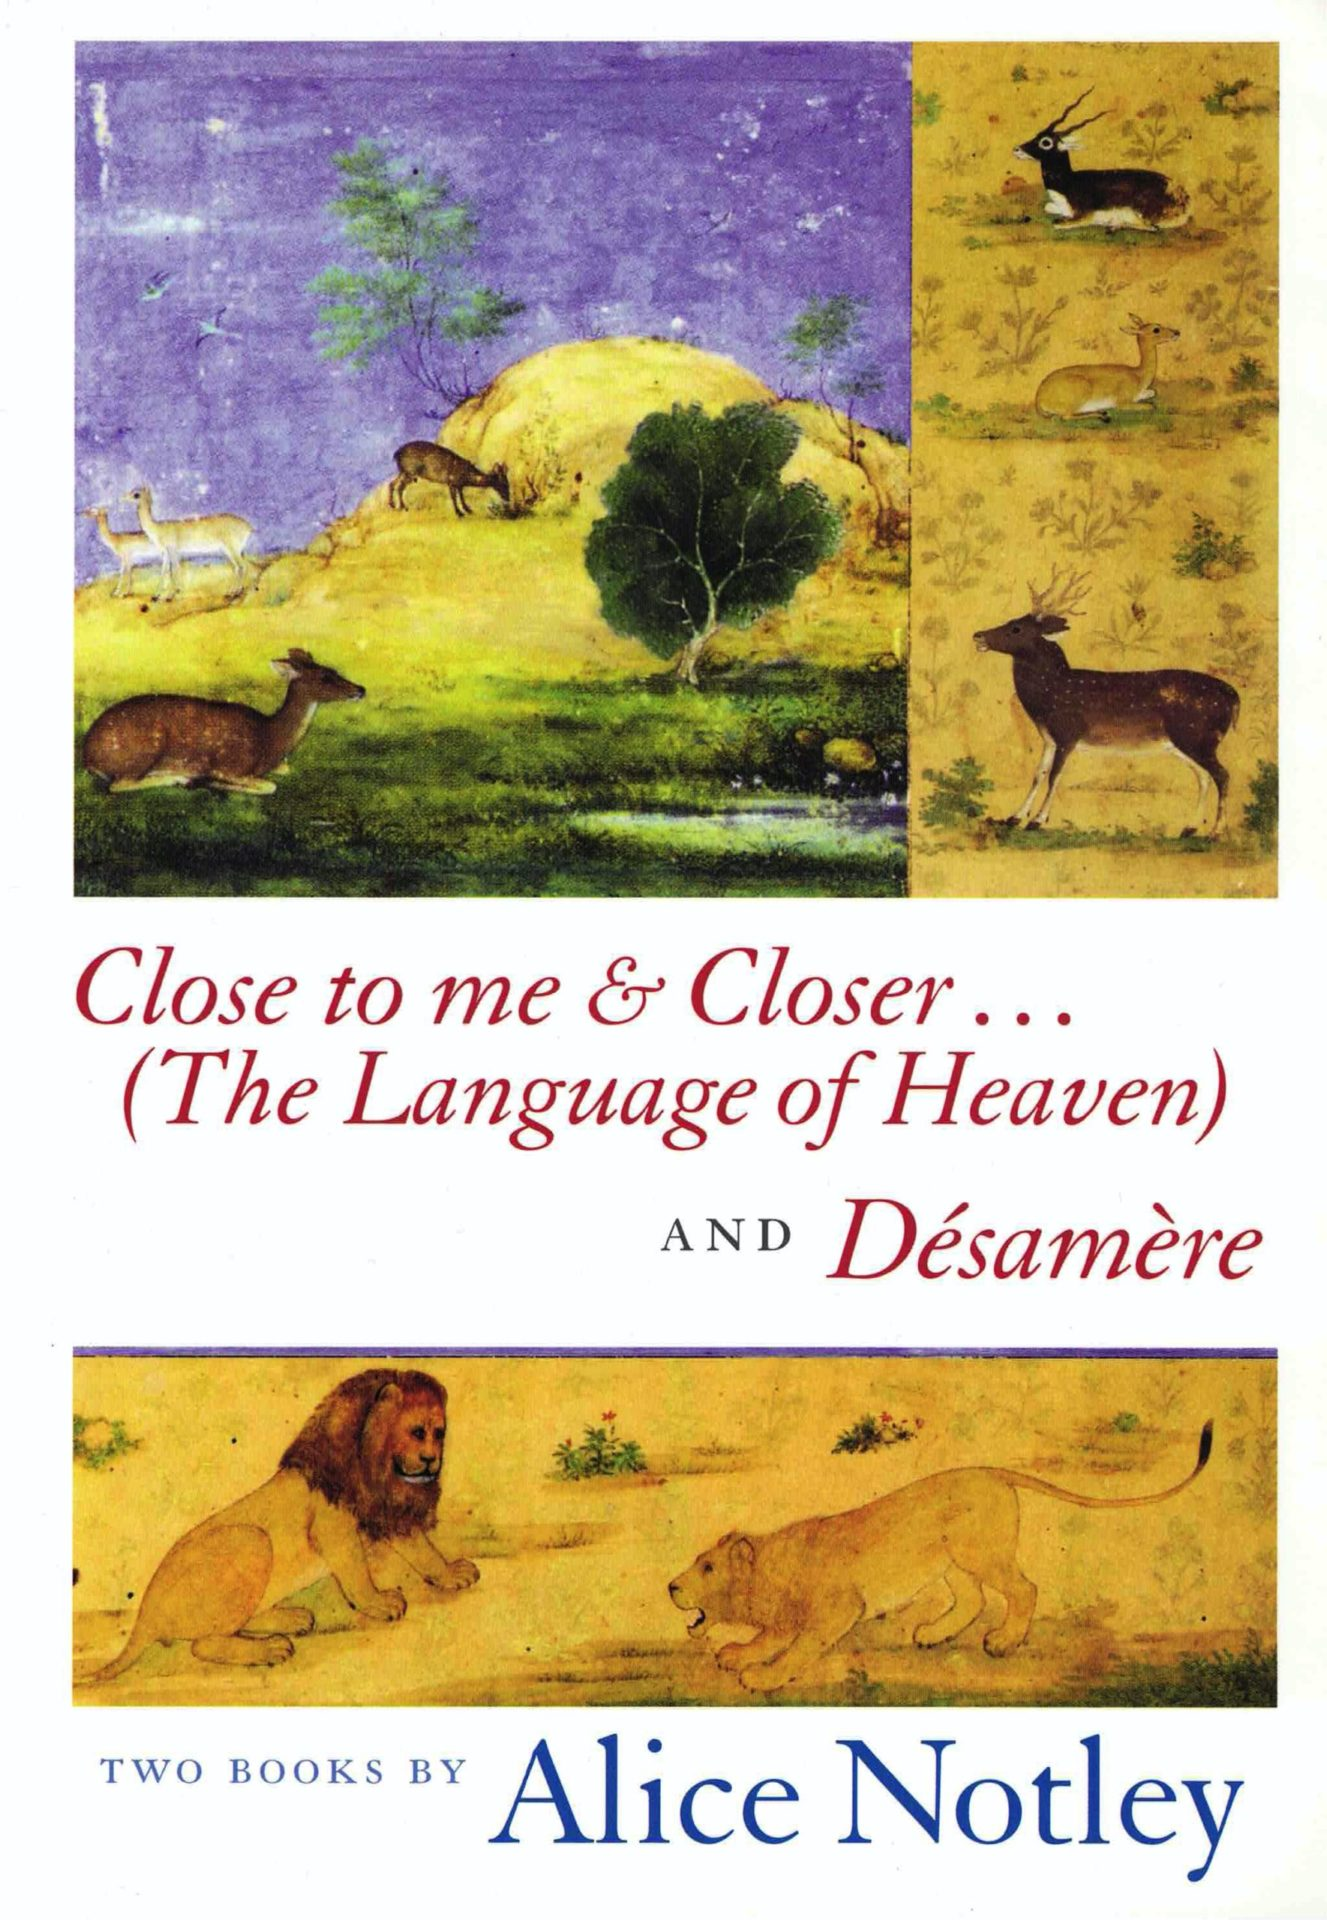 cover of Close to me & Closer by Alice Notley; top of page is a painting of deer and llamas grazing and laying in yellow and green grass with a purple sky, bottom of page is a painting of a male and female lion facing each other in yellow grass